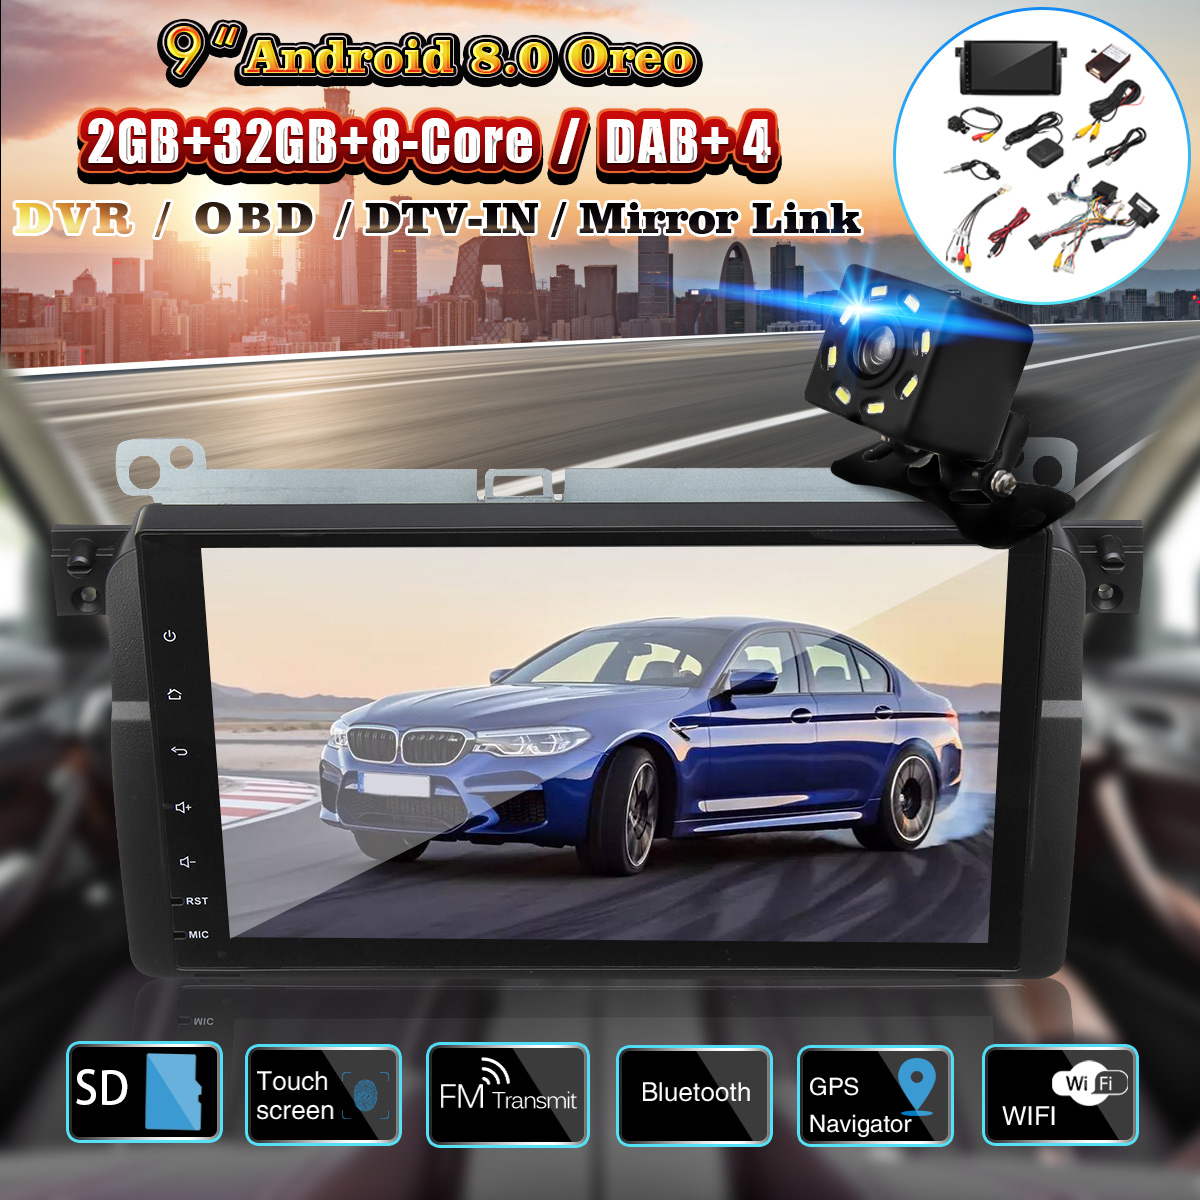 9 Inch Android 8.0 Car Stereo GPS Sat Navigation OBD DAB WiFi for BMW E46 M3 Rover 75 MG ZT